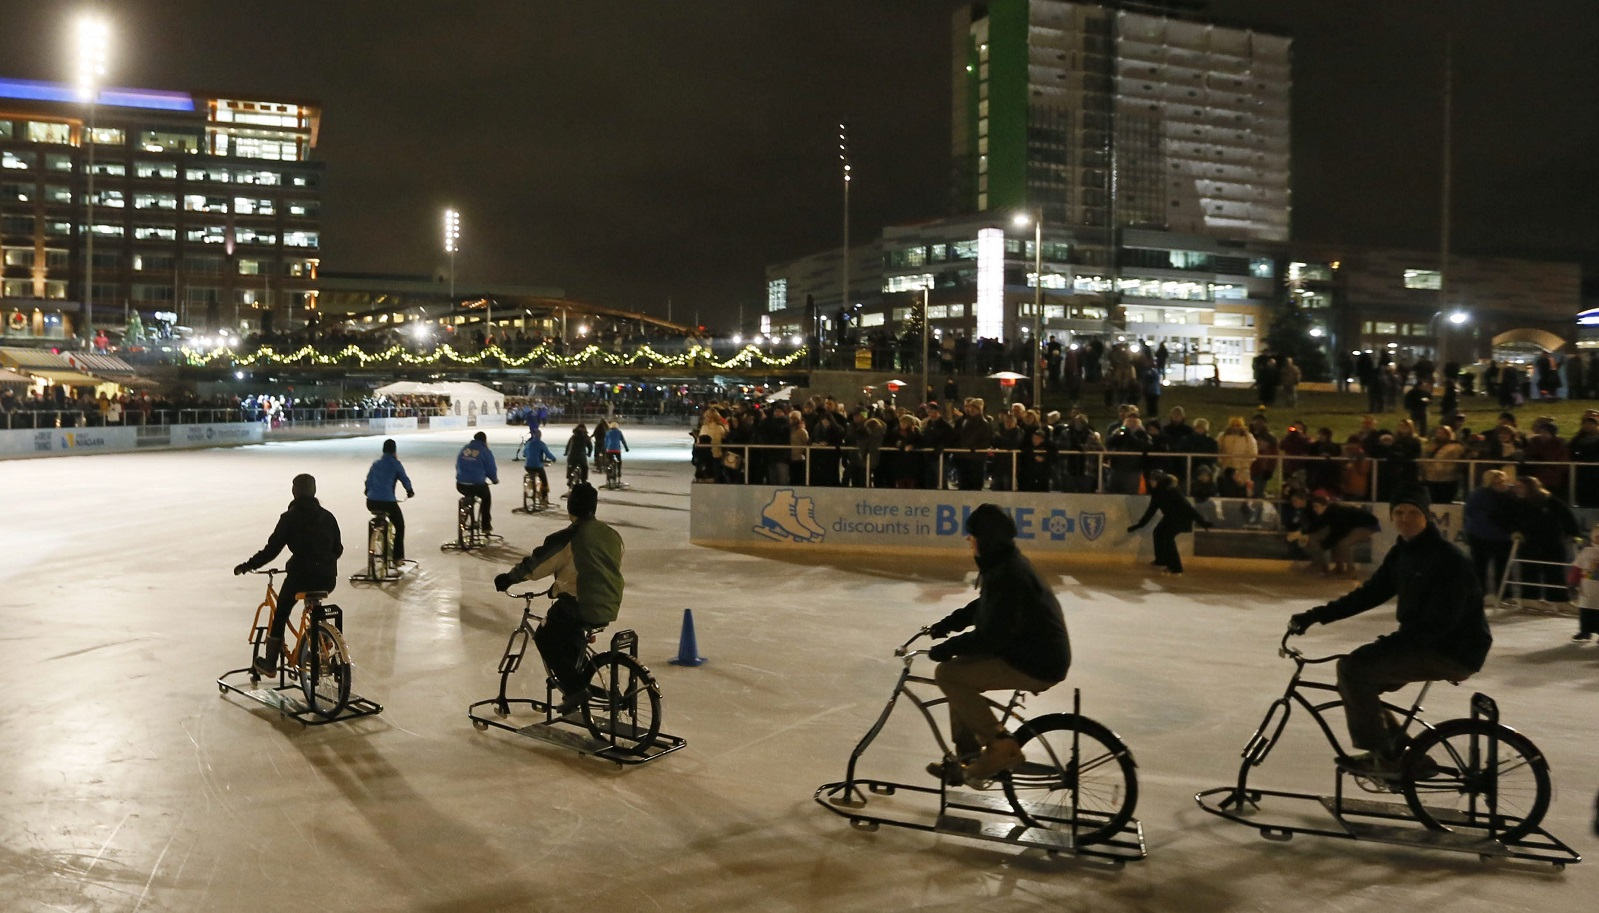 Ice Bikes of Buffalo gives a demonstration during the grand opening celebration of The Ice at Canalside, Dec. 18, 2014.  (Derek Gee/Buffalo News file photo)